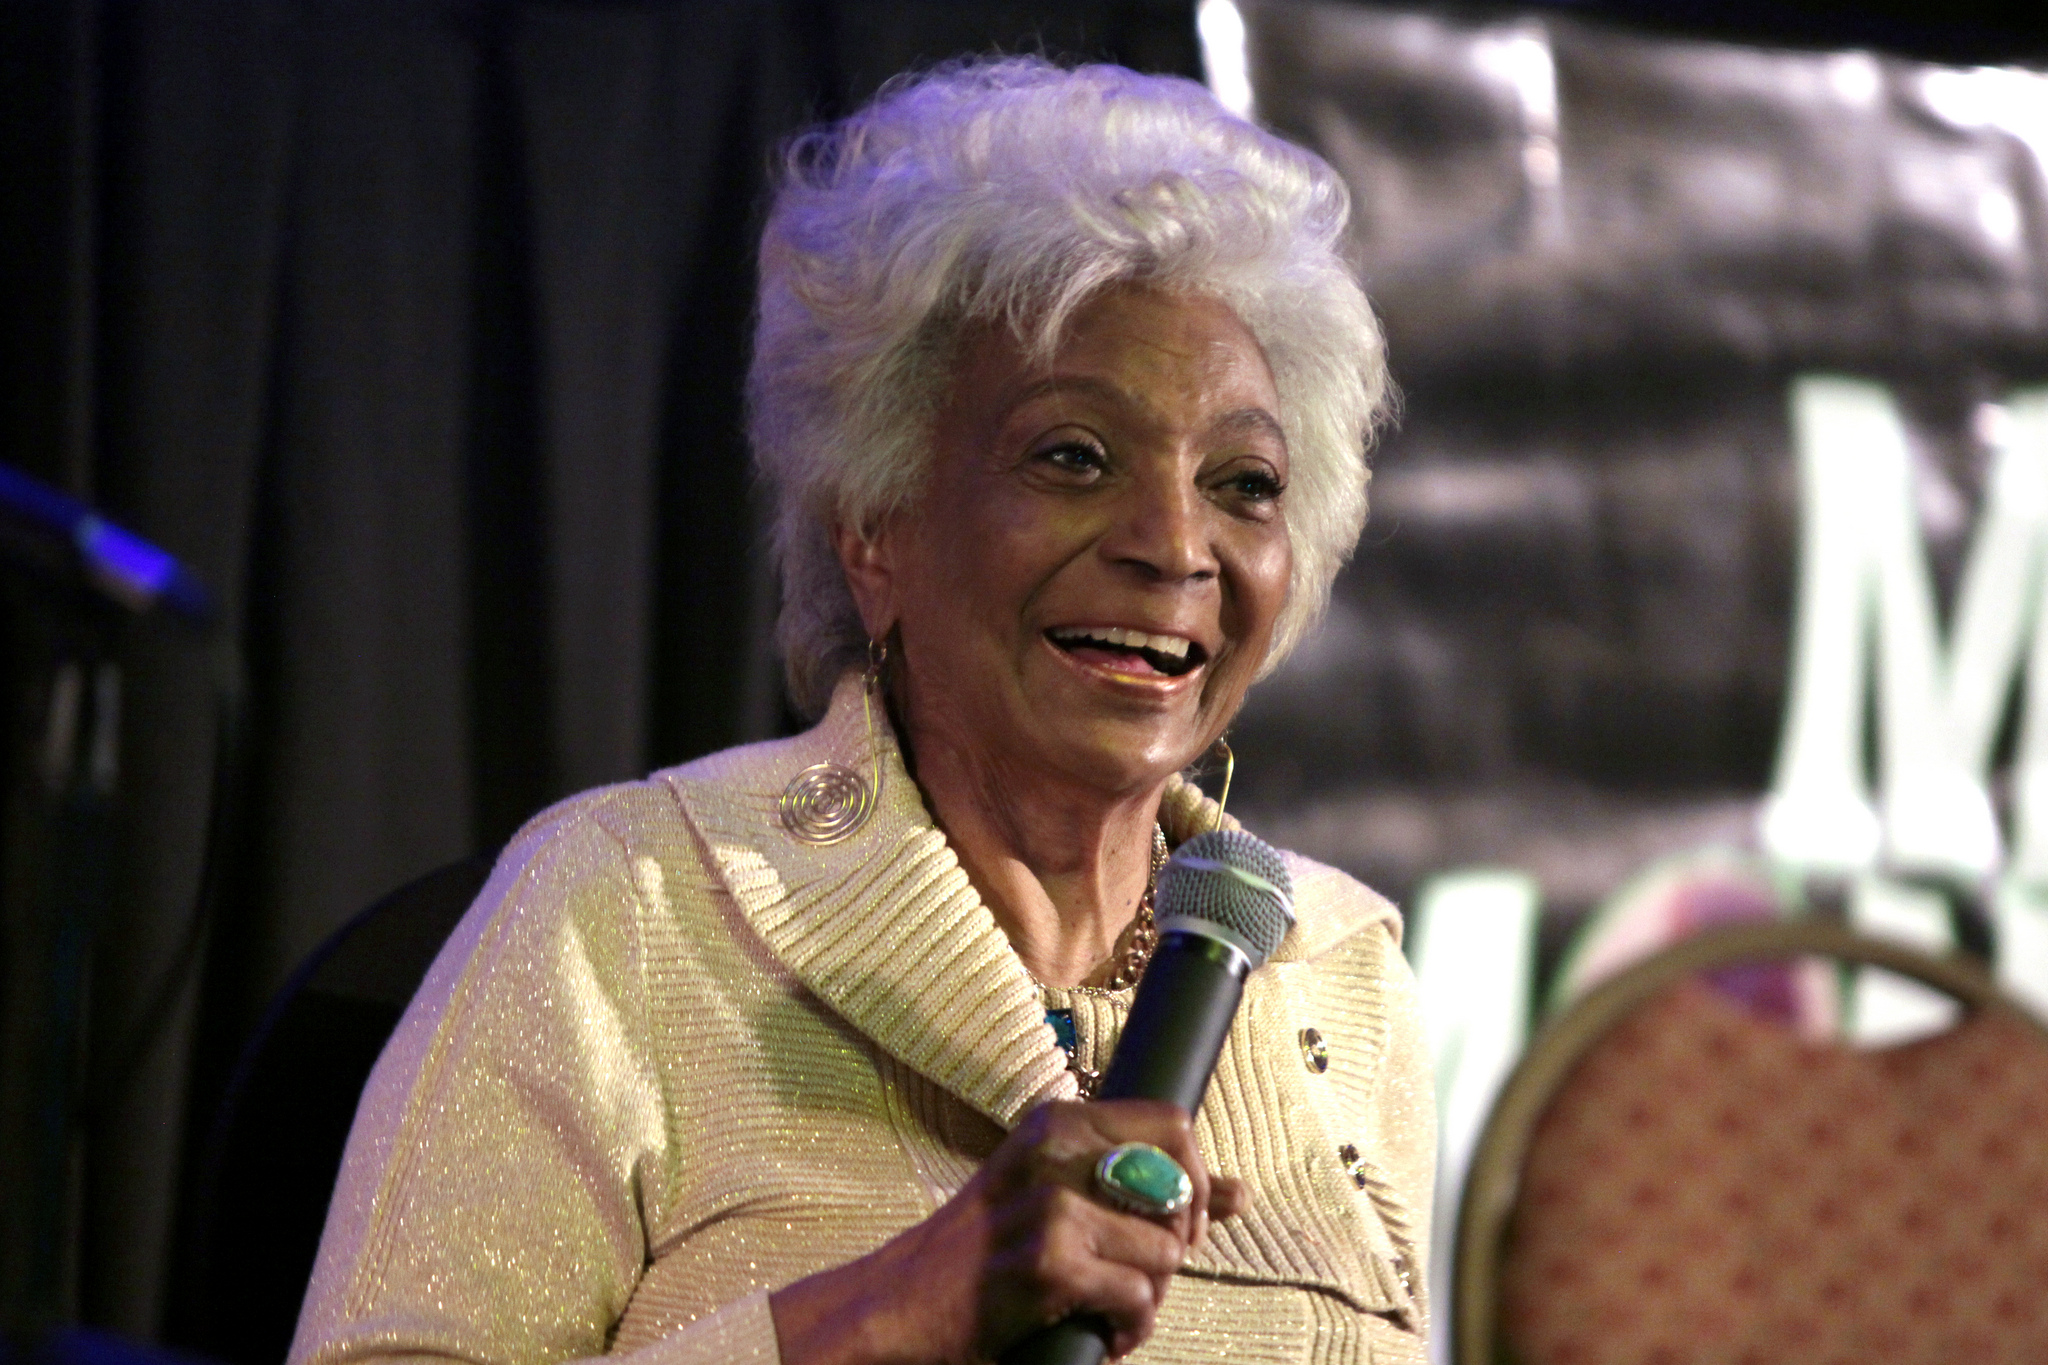 Nichelle Nichols facts